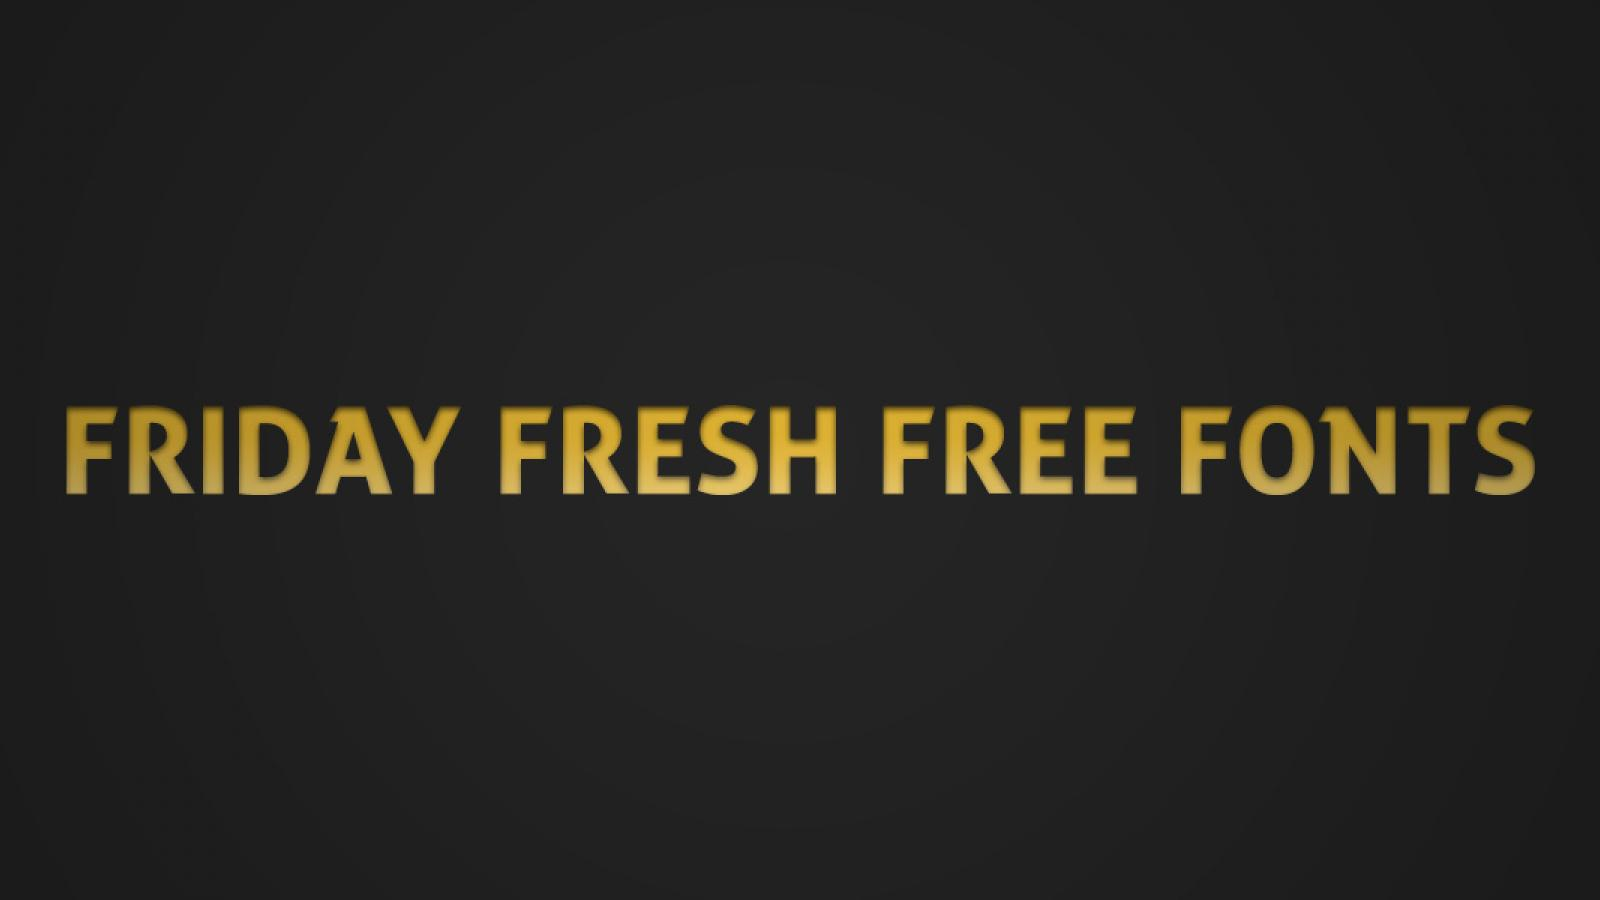 Friday Fresh Free Fonts - Prime Script, Manteka, ...